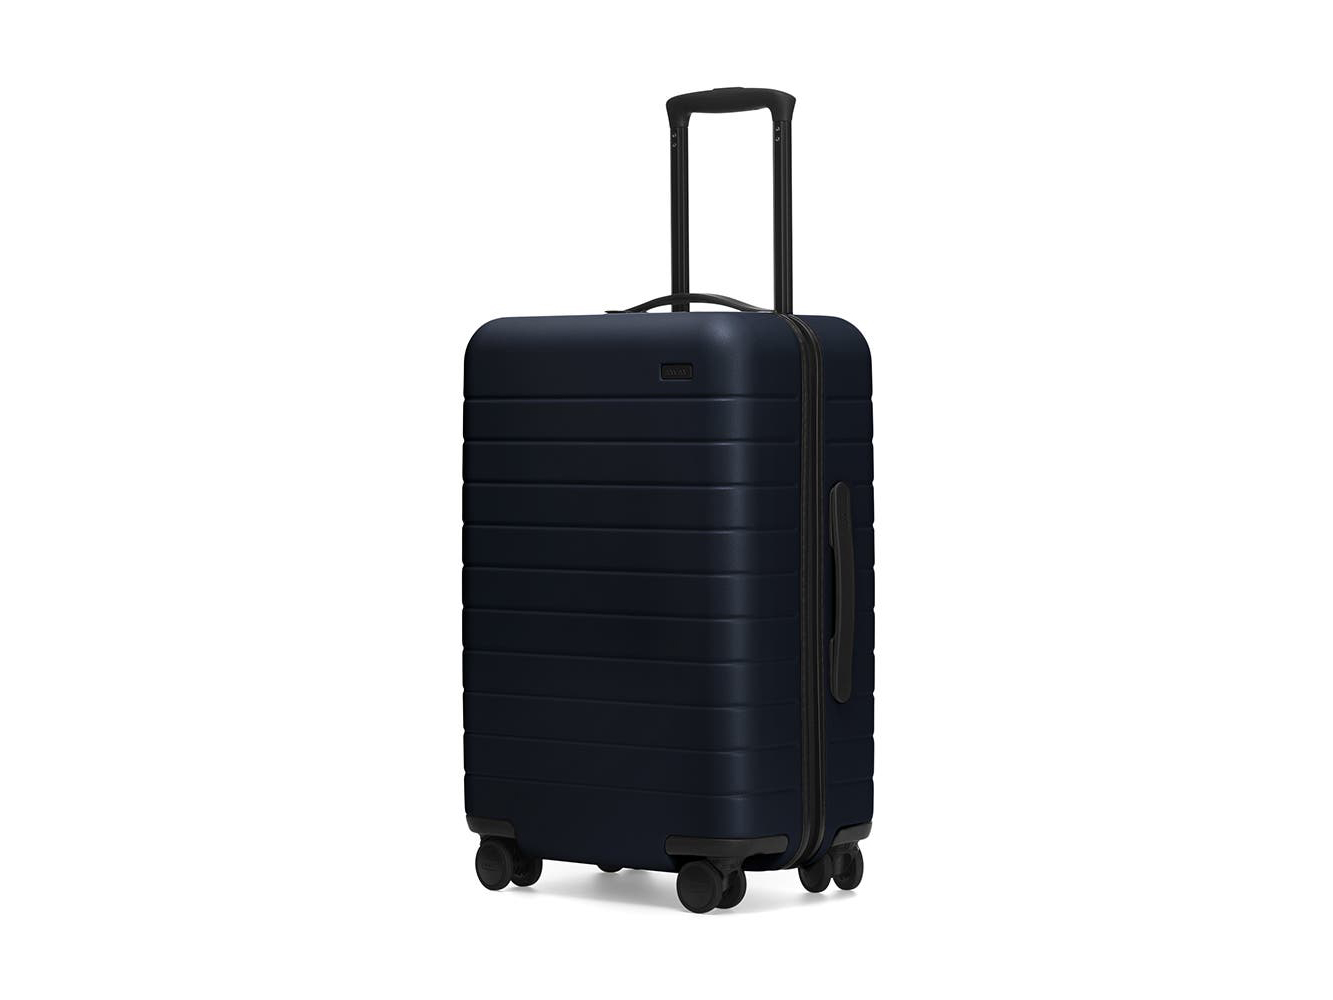 Away The Bigger Carry-On 22-Inch Suitcase